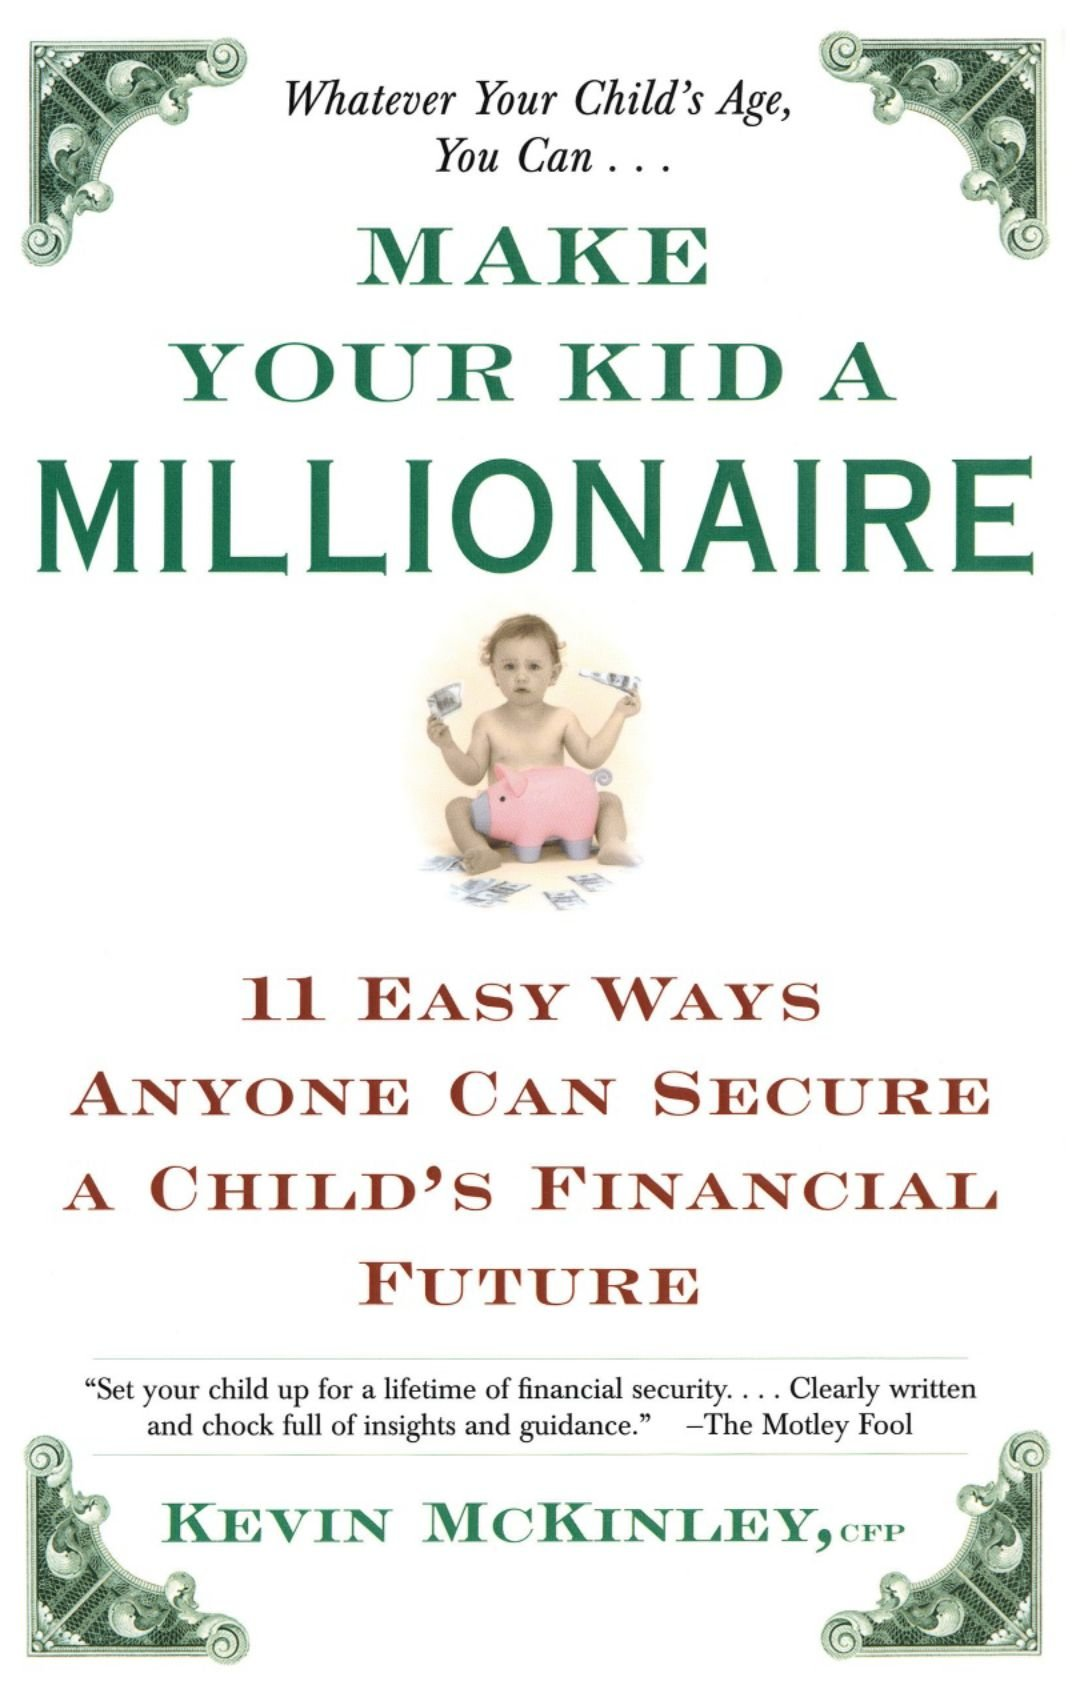 Make Your Kid a Millionaire: 11 Easy Ways Anyone Can Secure a Child's Financial Future PDF